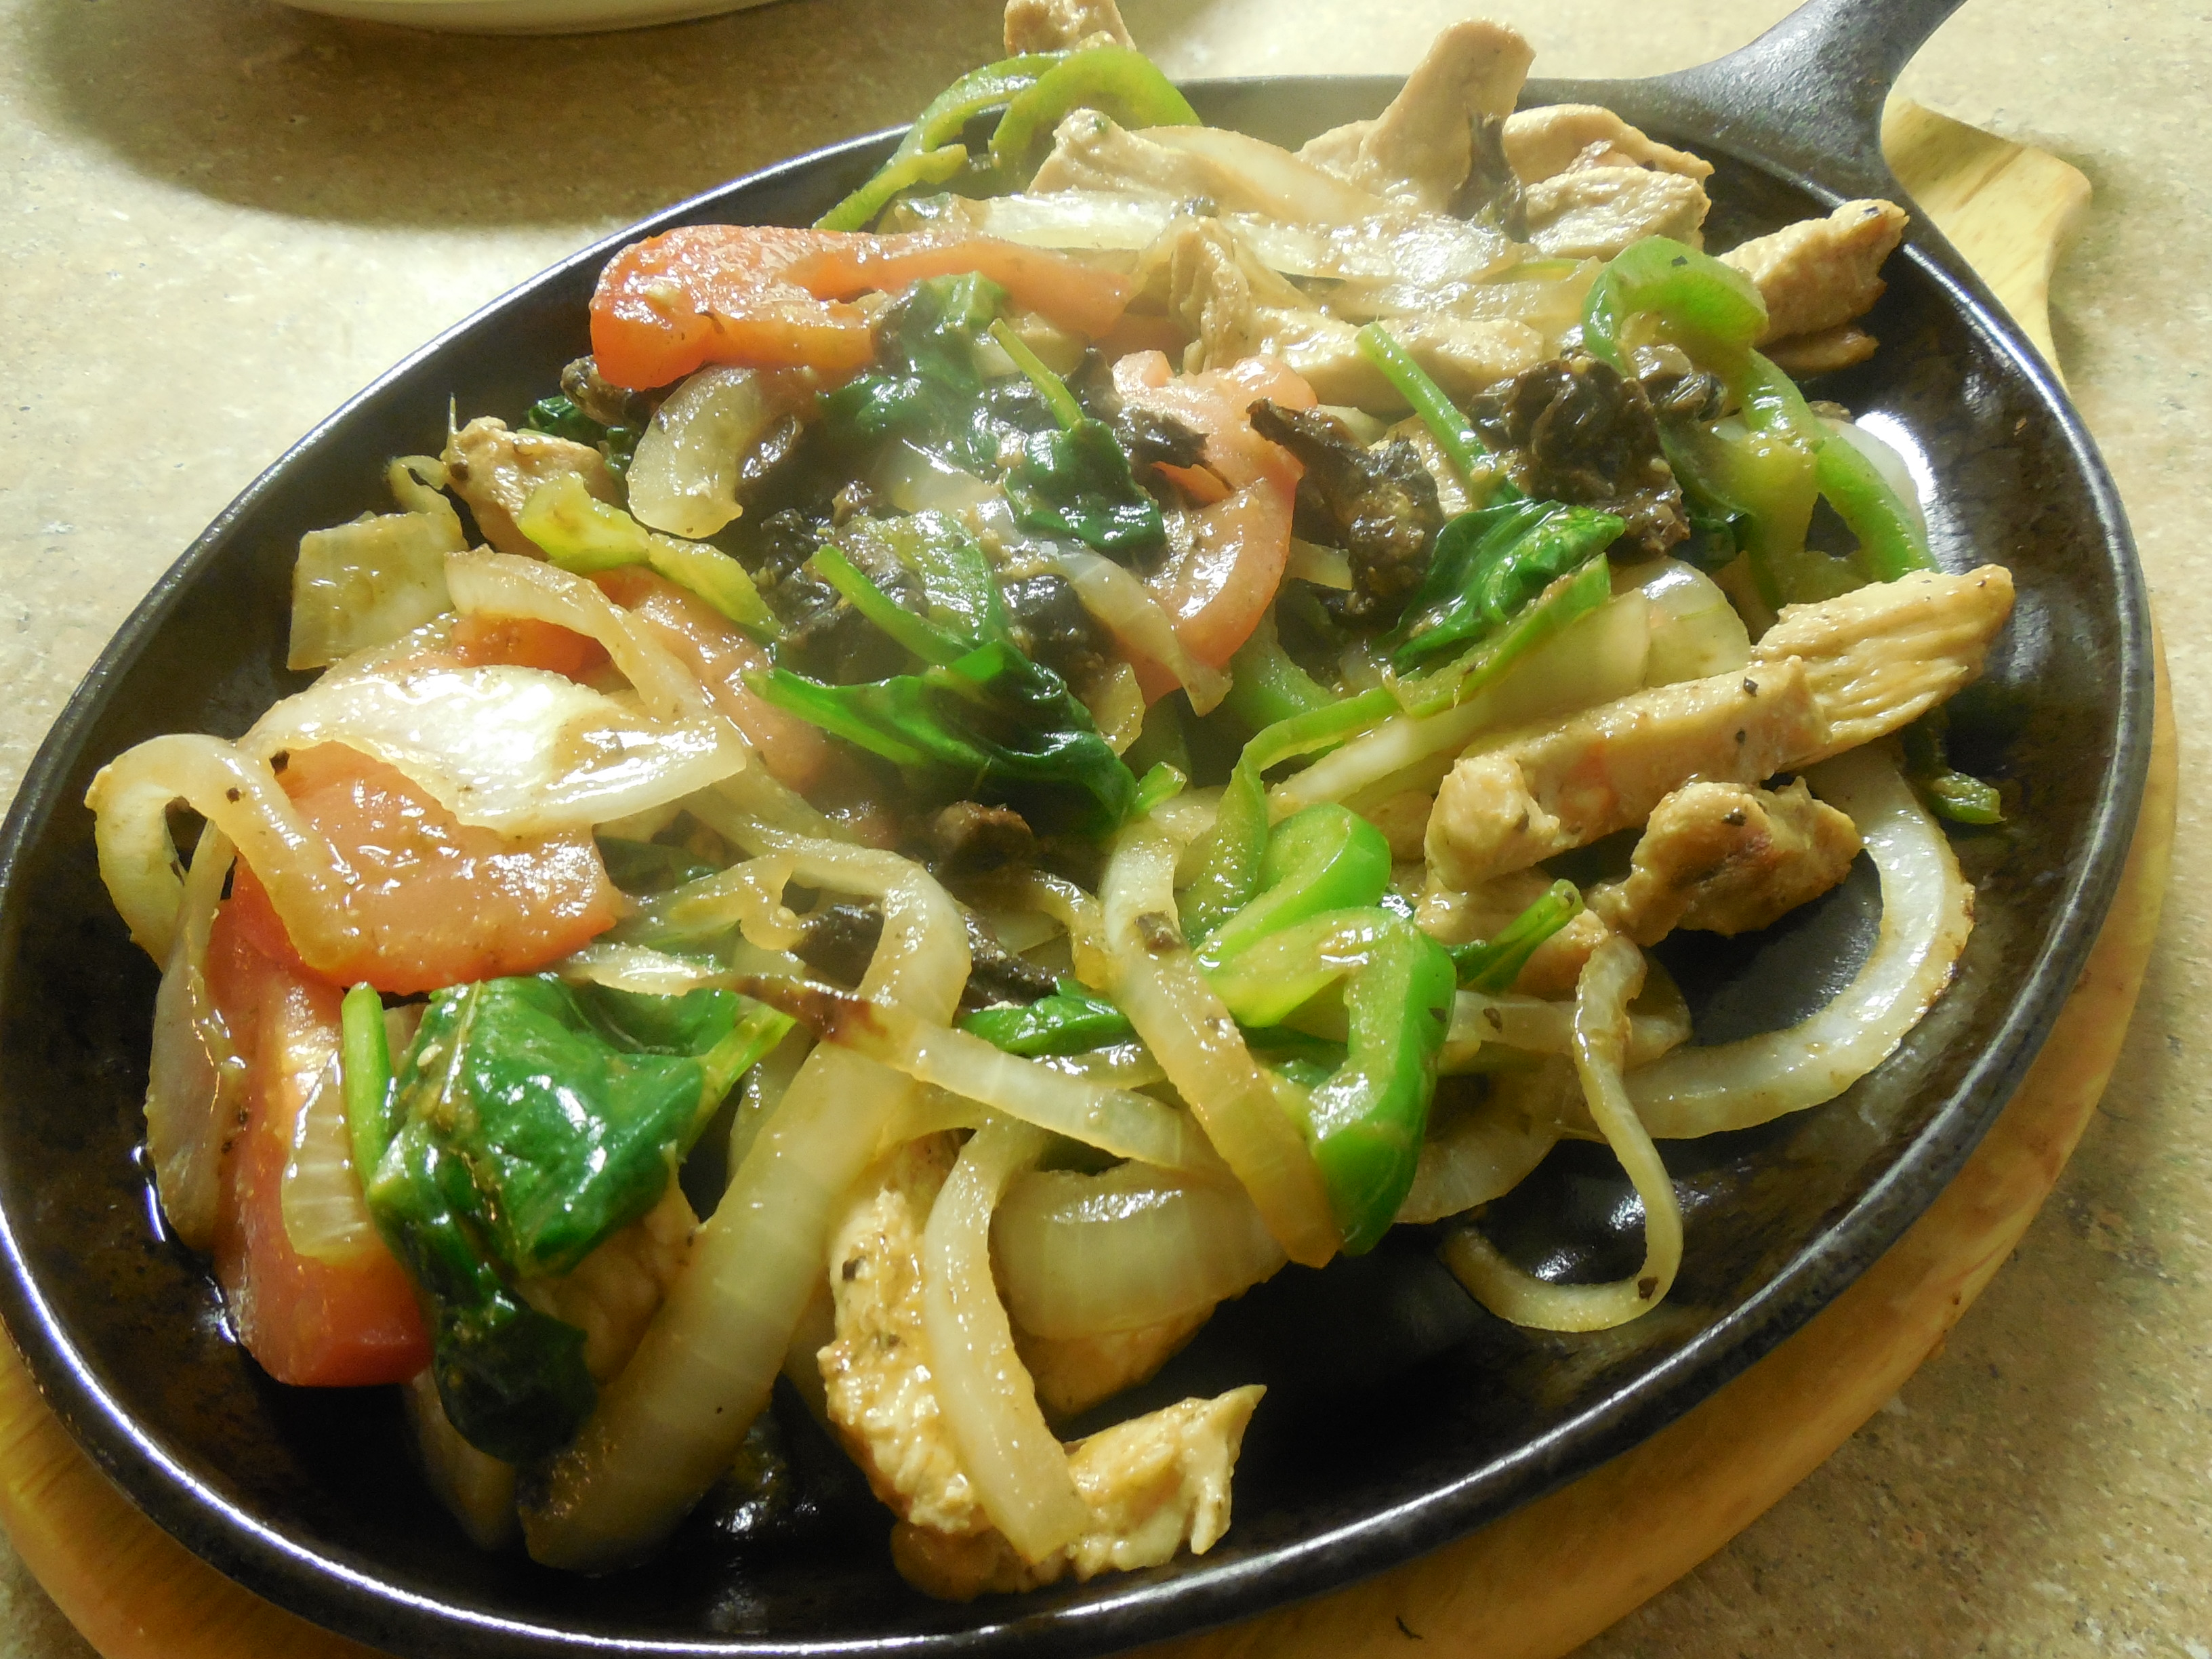 Special Vegetable & Chicken Fajita